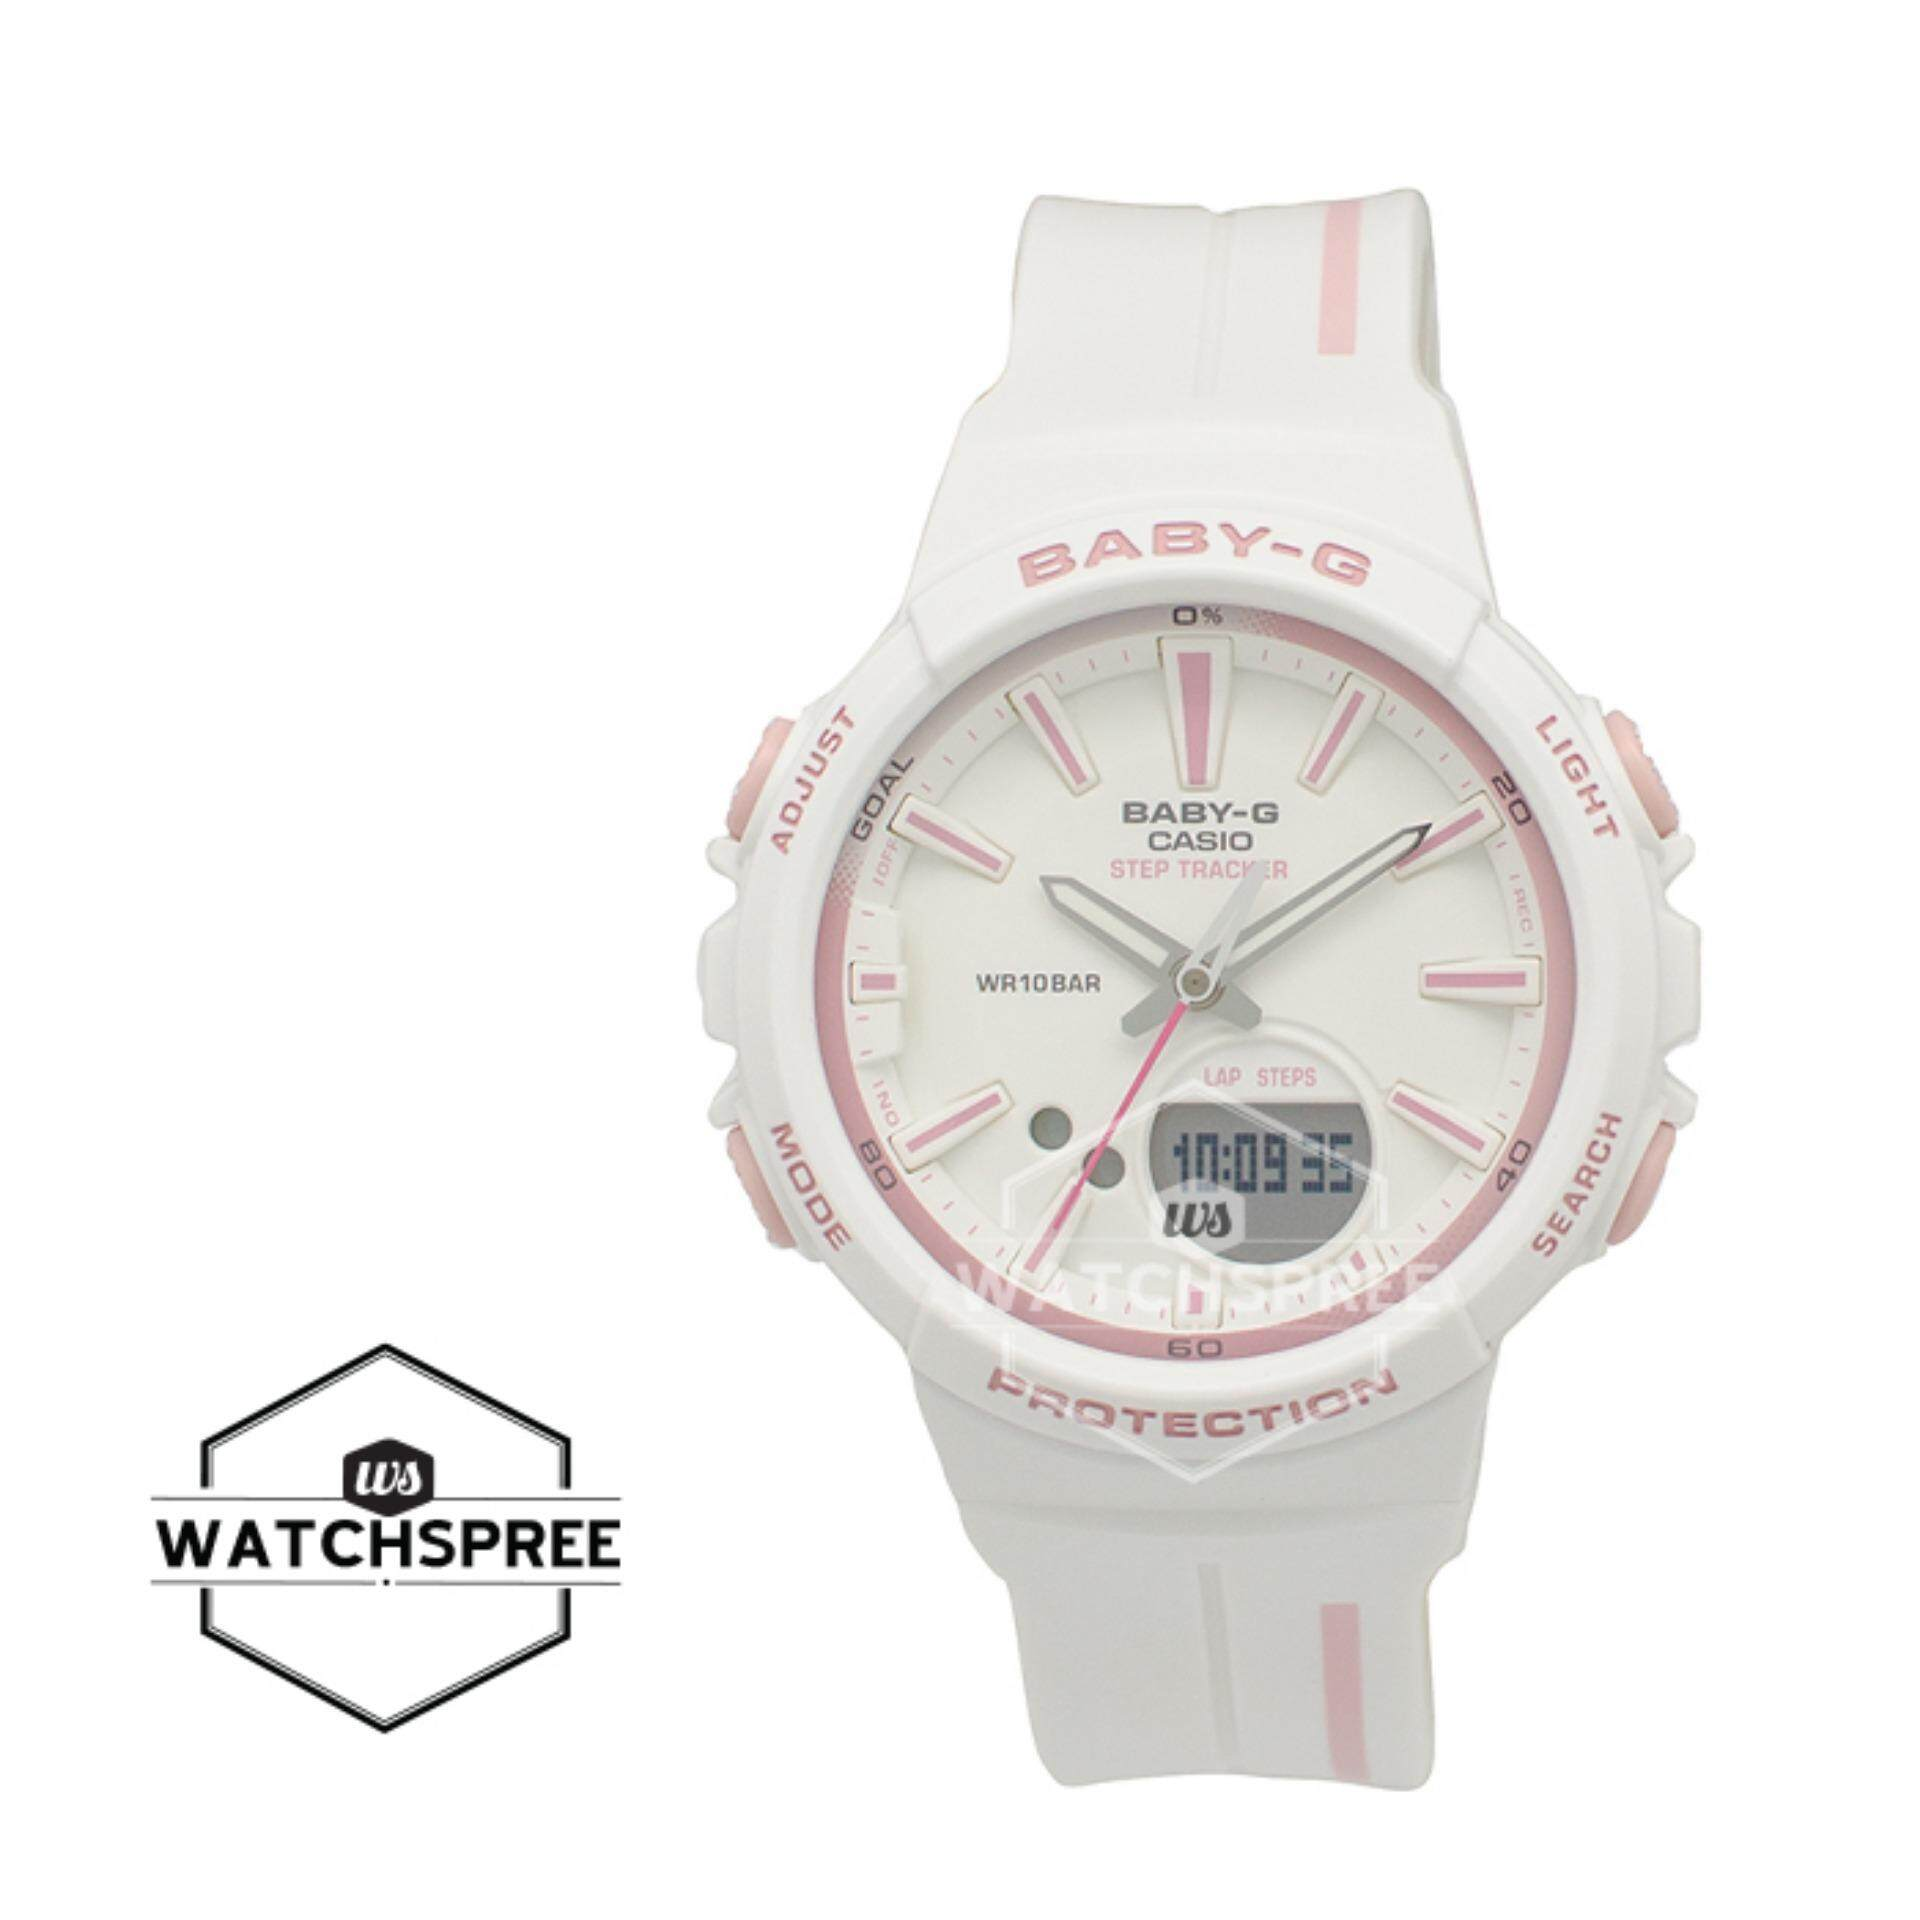 Casio Baby G Watches Price In Malaysia Best Ba 110tx 4a Original Punto It Design Bgs 100 Step Tracker For Running Series White